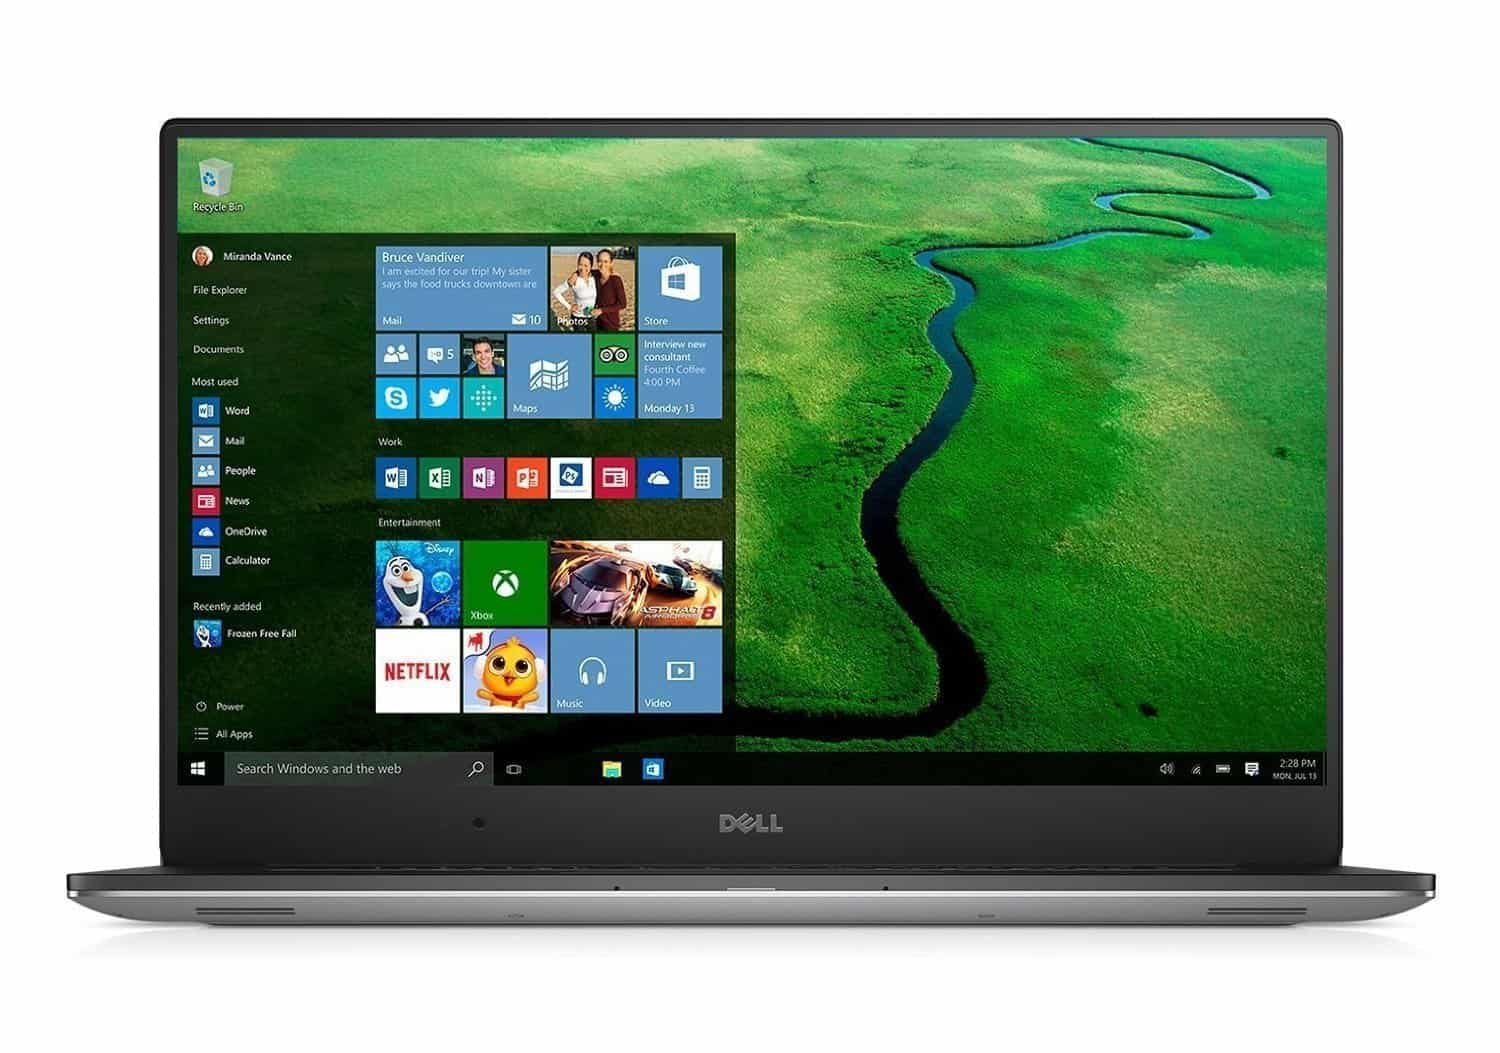 Dell Precision M5510 Review